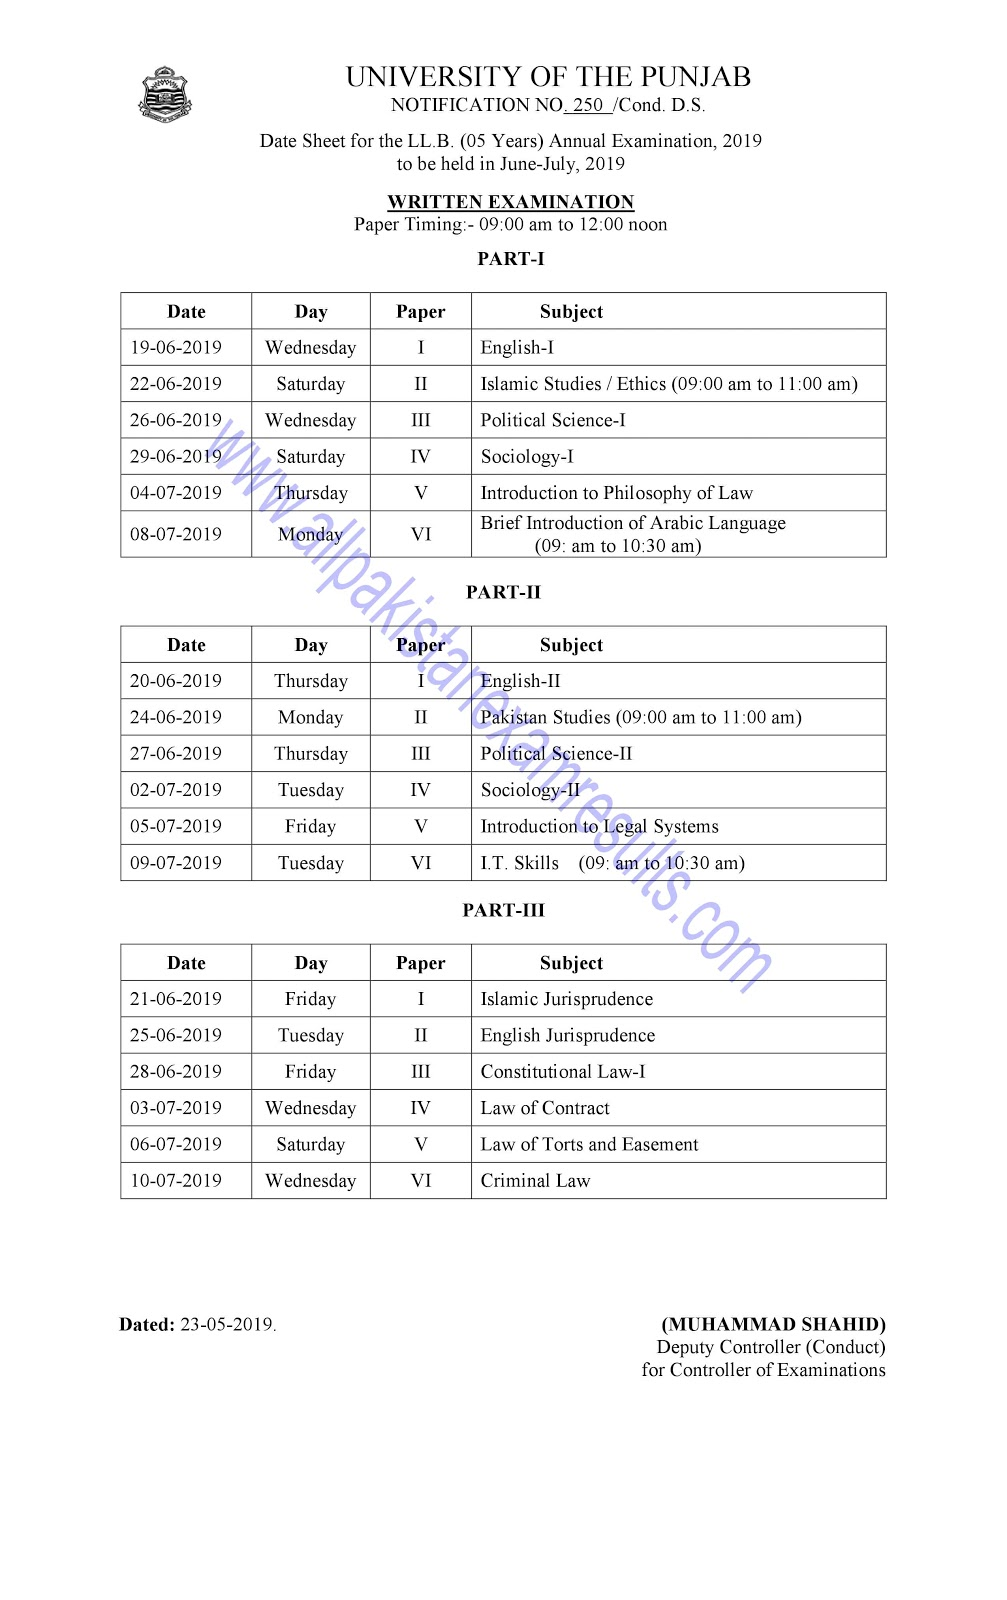 Date Sheet LLB 5 Years Annual 2019